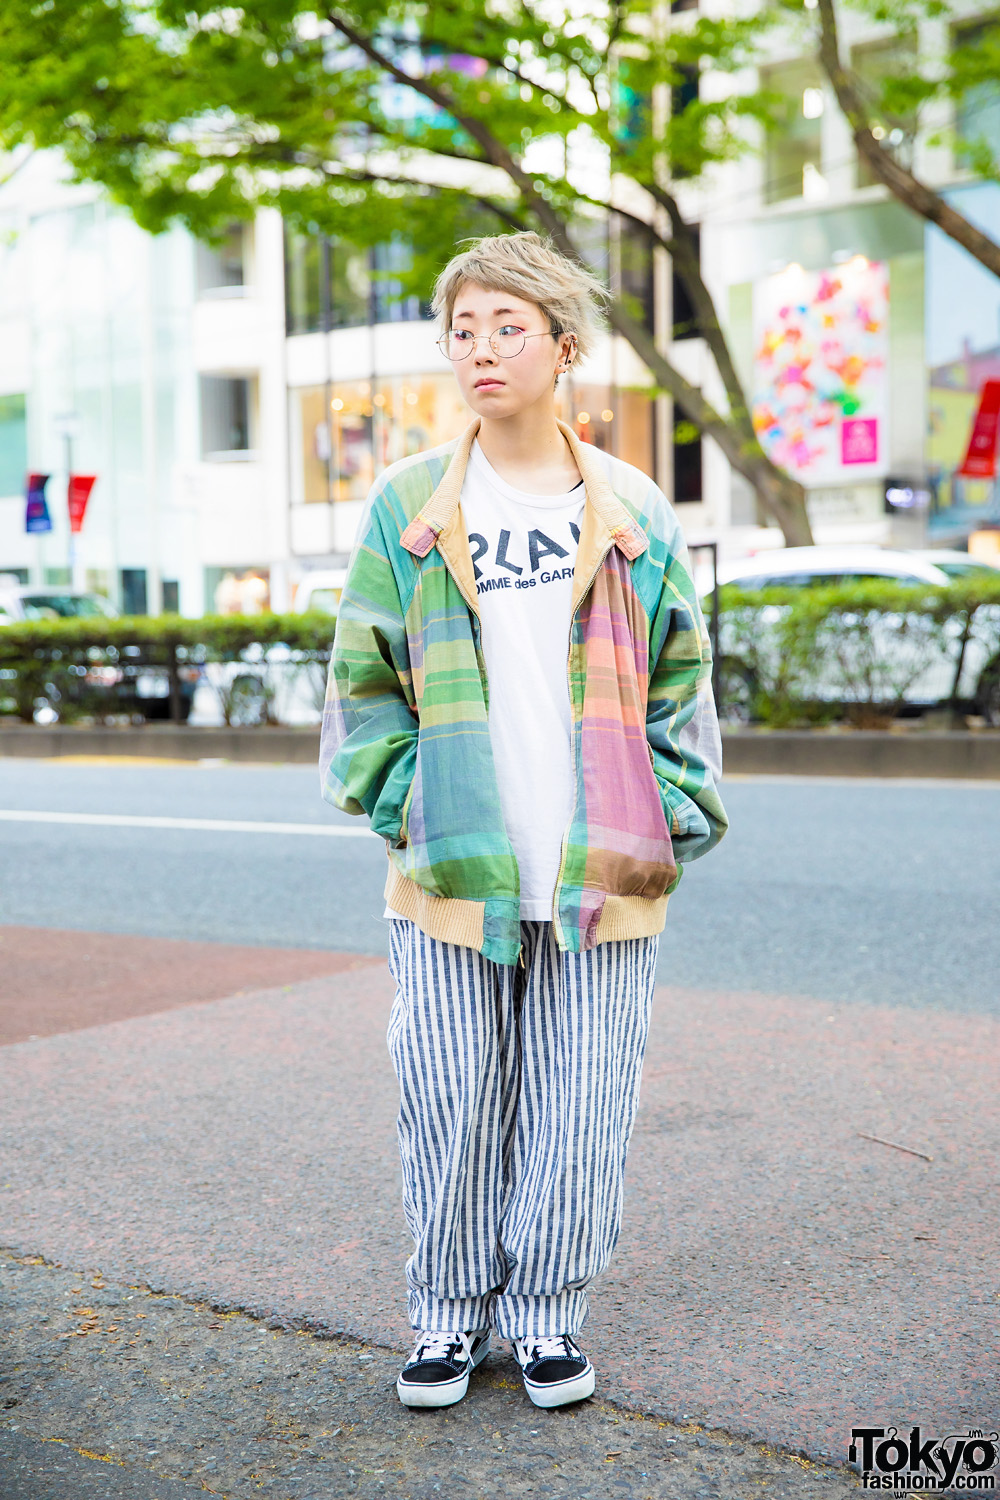 Nina s favorite fashion brands are Supreme and Polo Ralph Lauren. Her  favorite musical artists include Brahman, Acidman, 10-Feet, and Asian  Kung-Fu ... 970b66ec33d